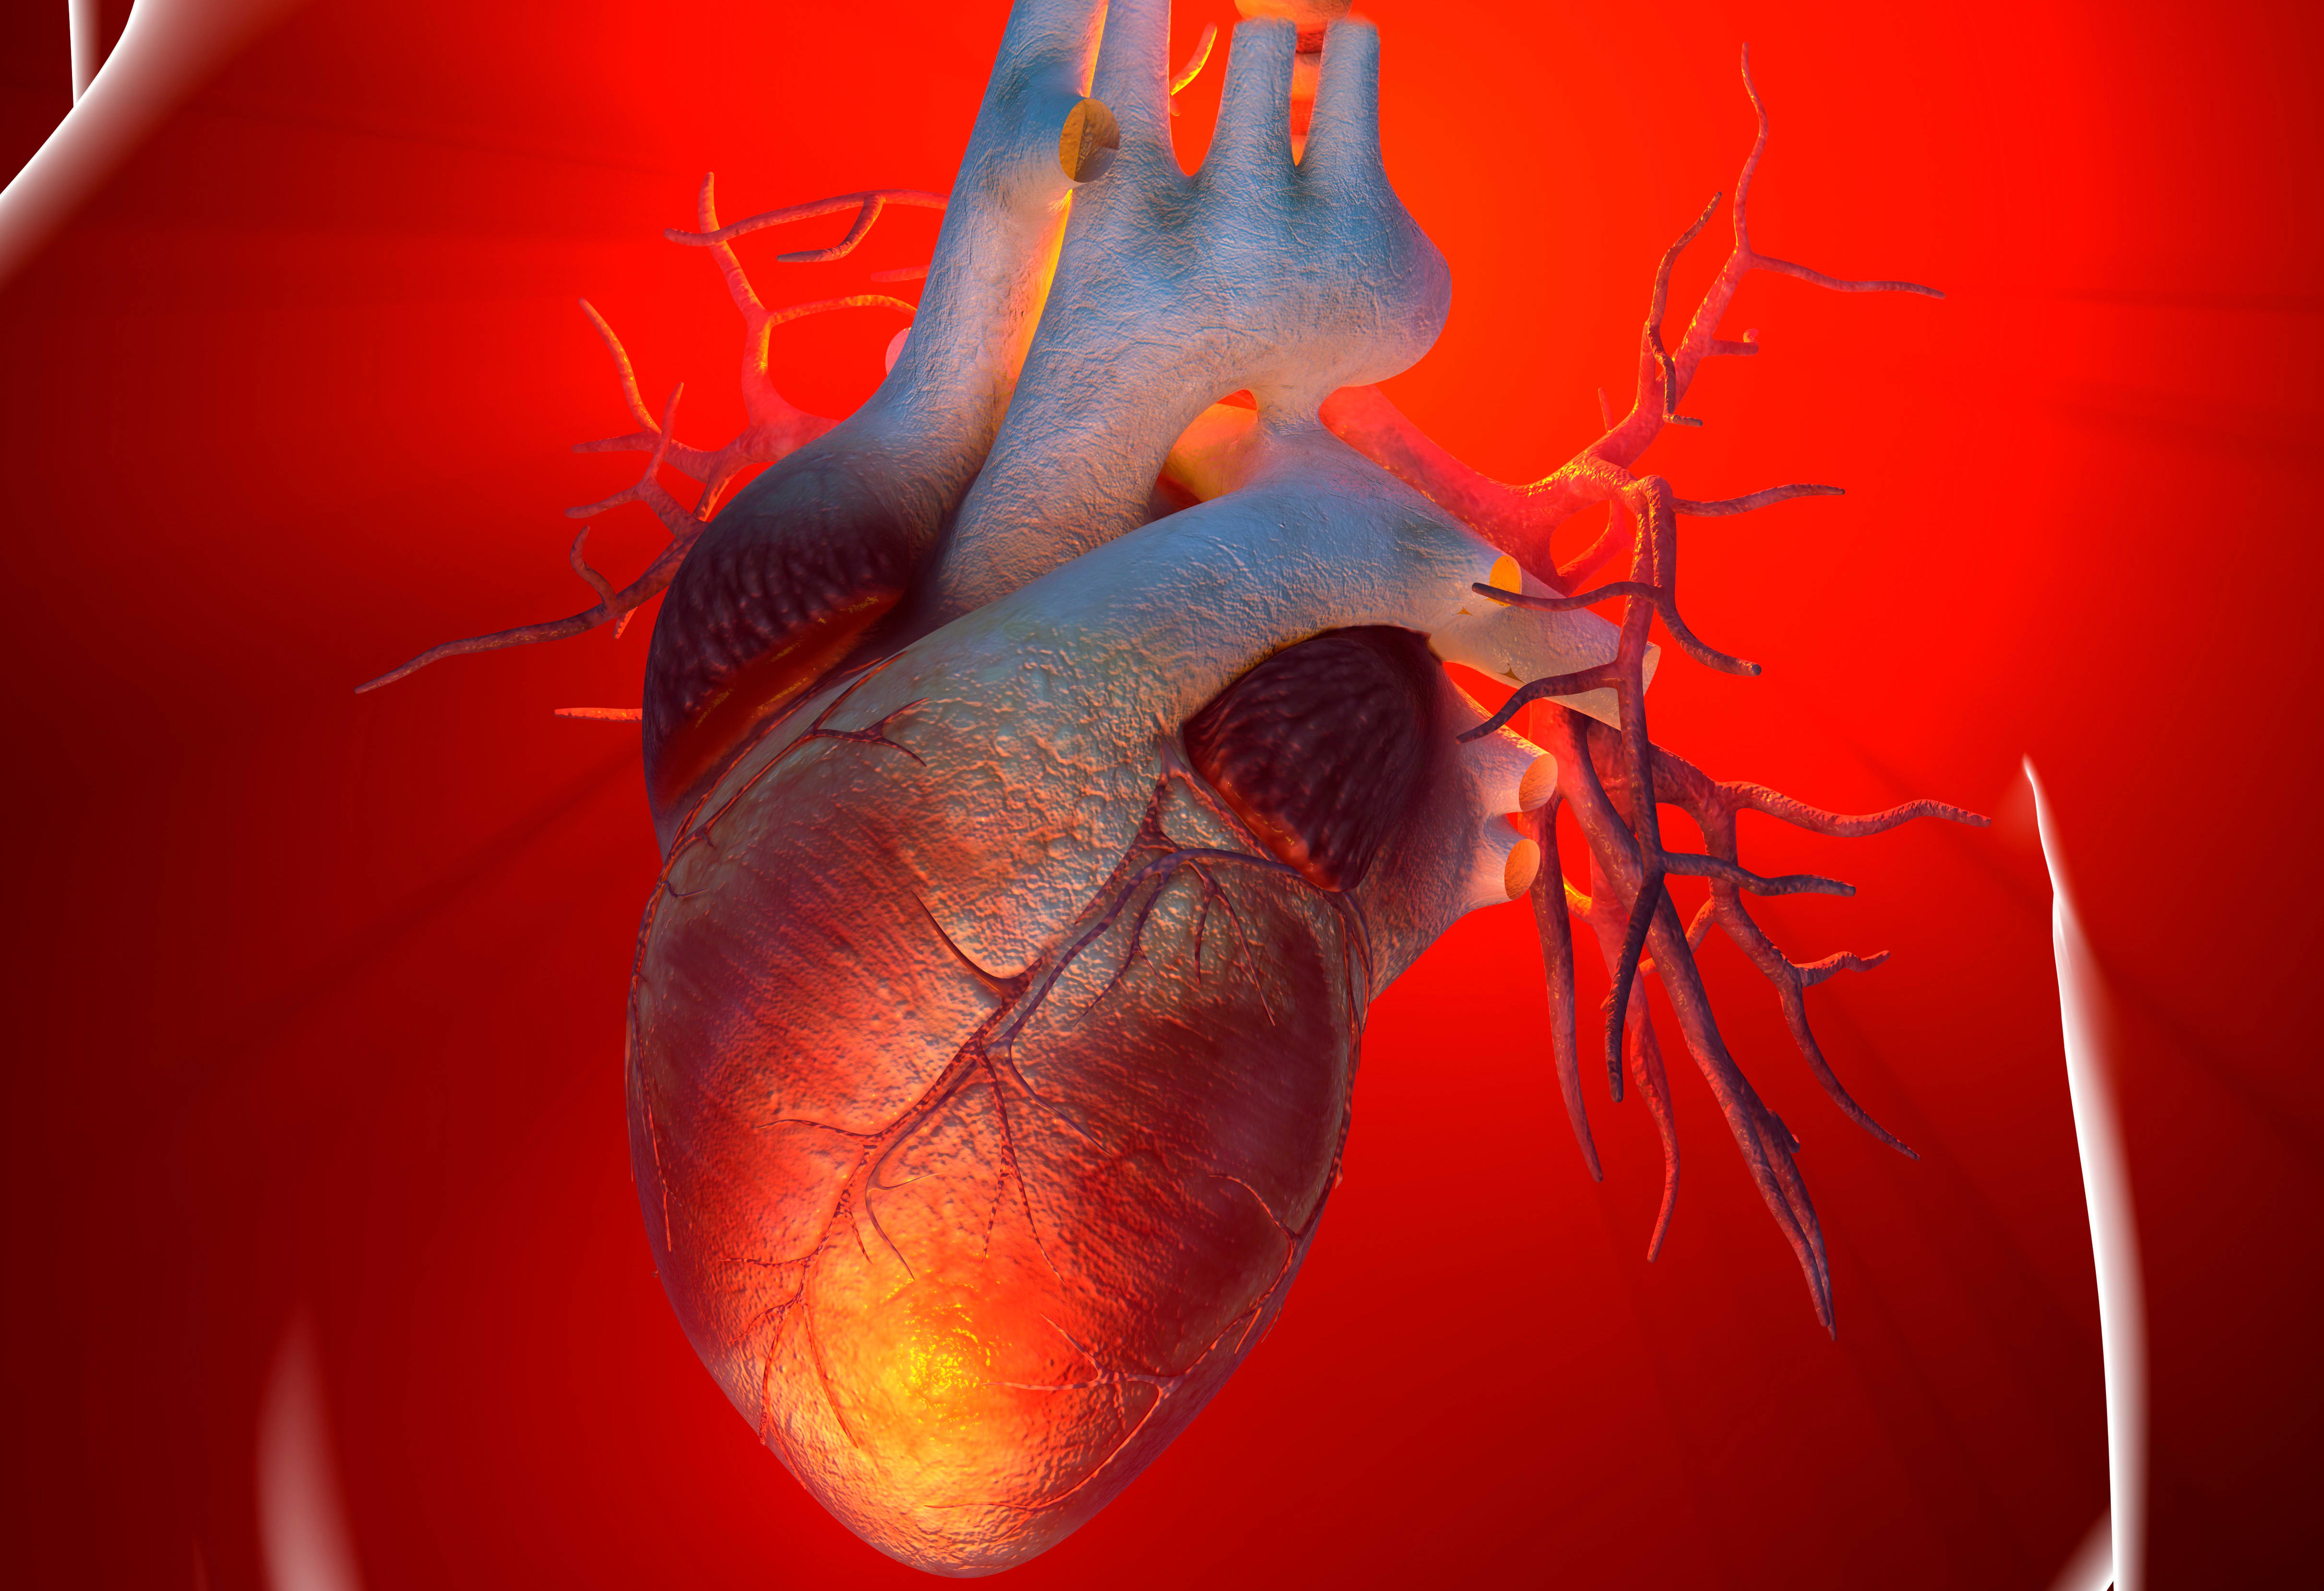 Study: Cancer patients at higher risk of dying from heart disease